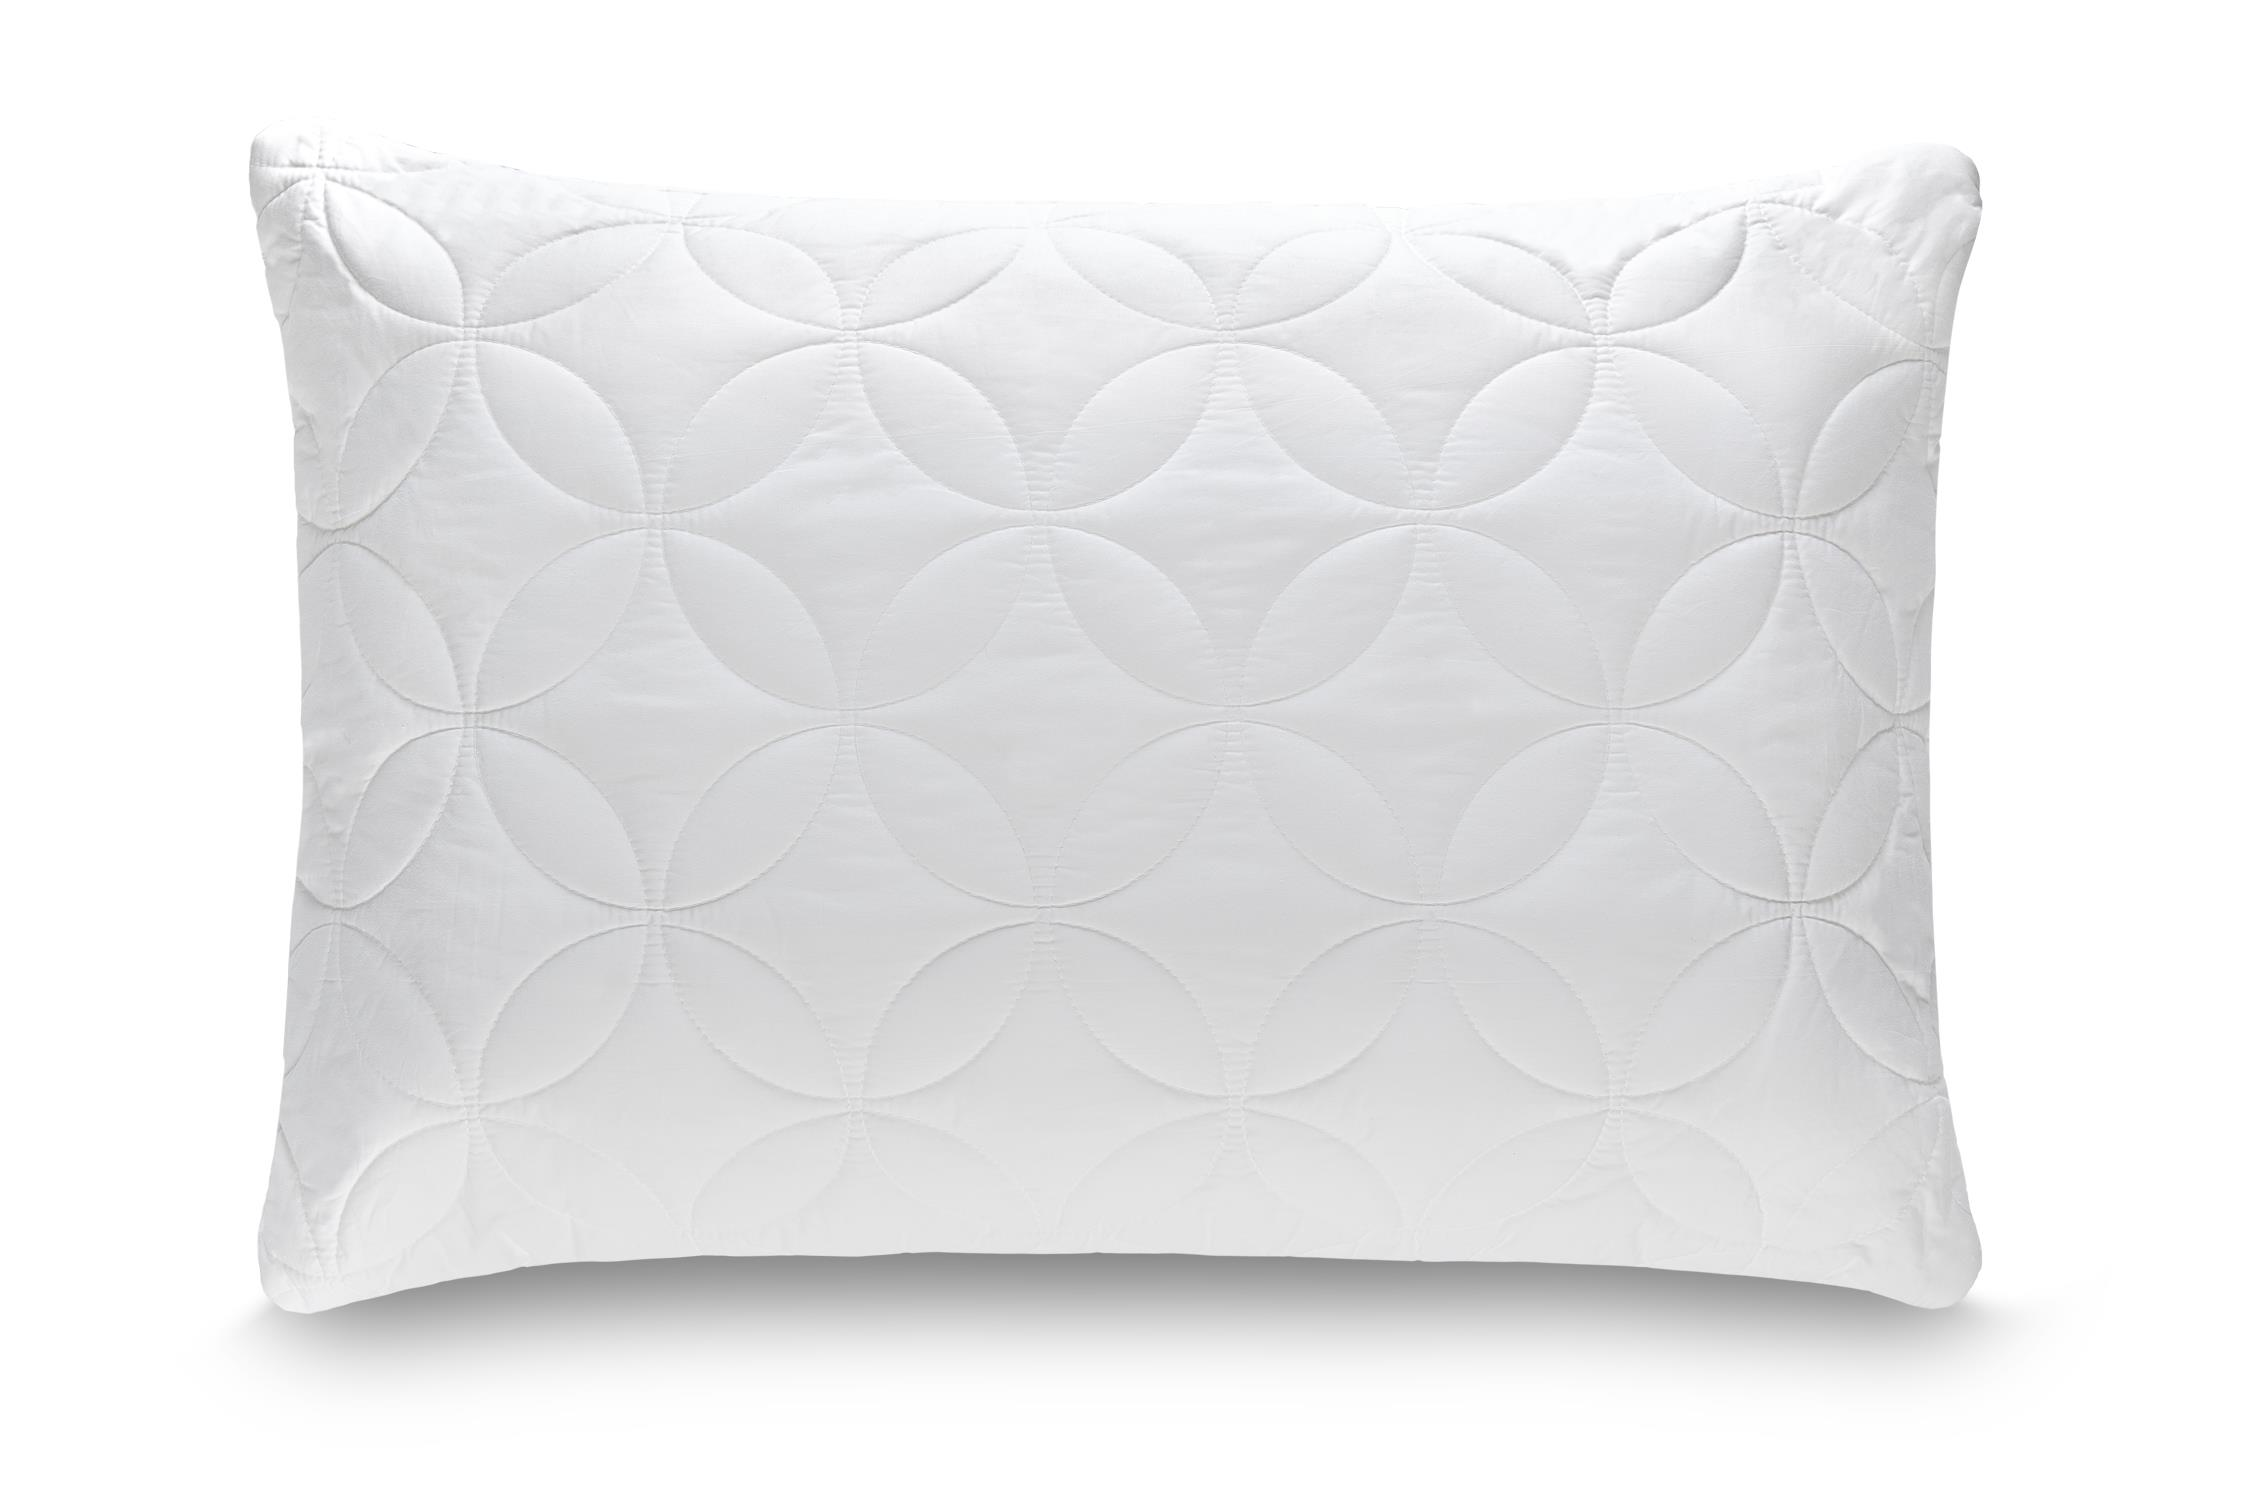 Pillows Tempur-Cloud Soft & Conforming Queen Pillow by Tempur-Pedic® at SlumberWorld